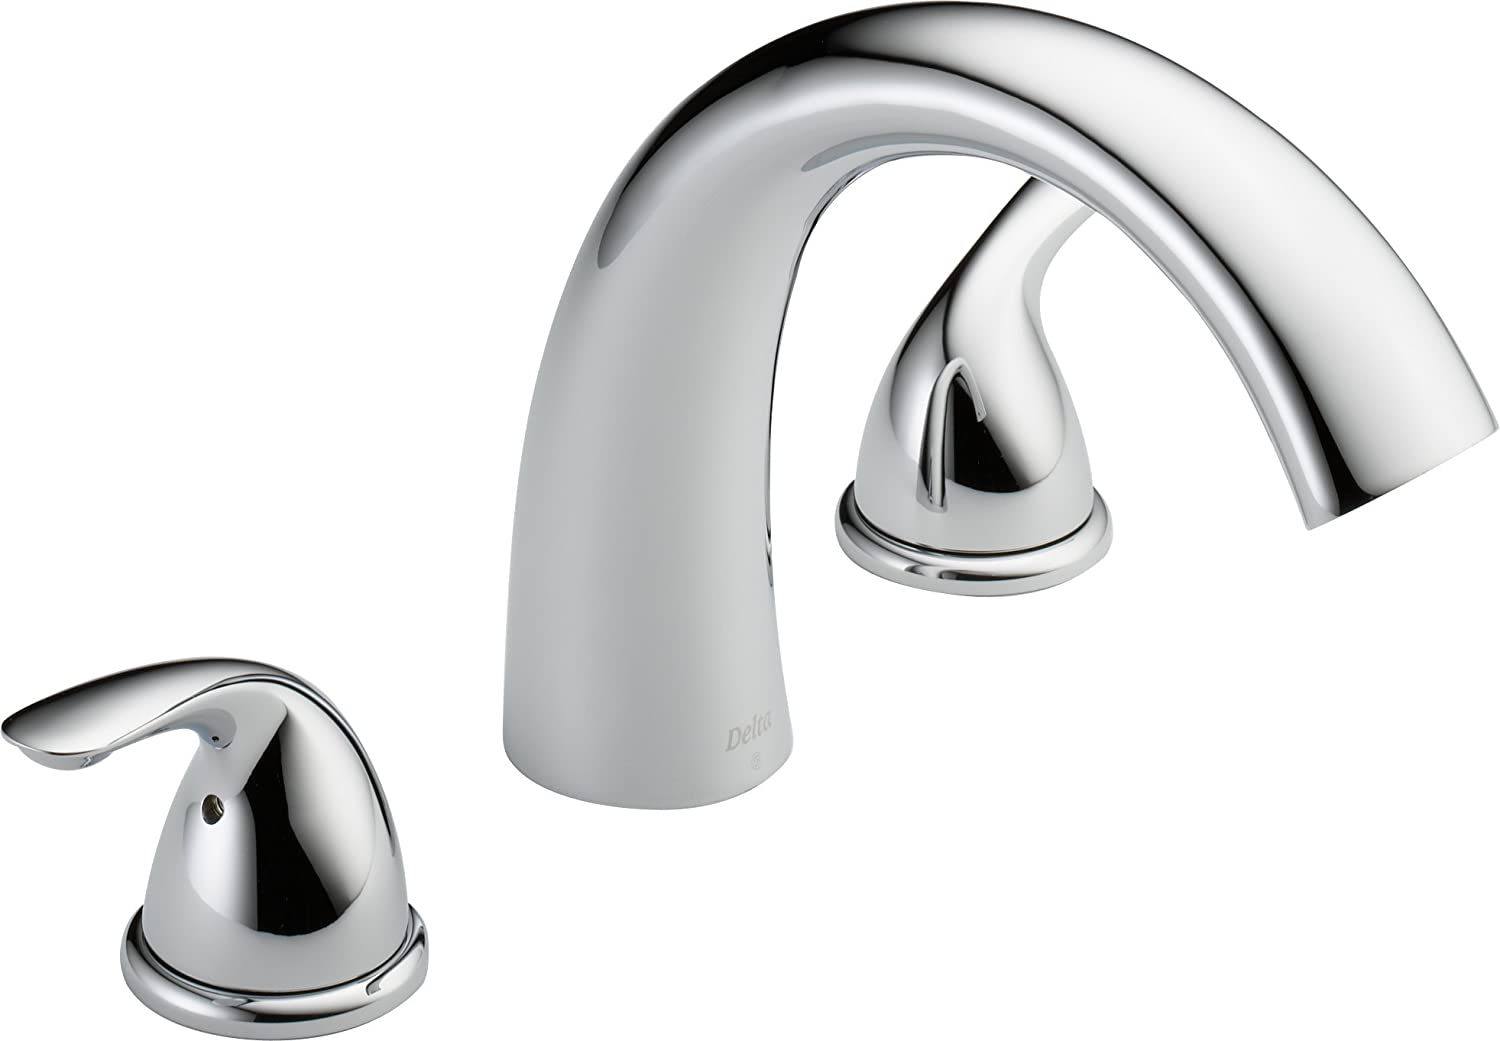 Beau Delta T2705 Roman Tub Trim, Chrome (Valve Sold Separately)   Two Handle Tub  Only Faucets   Amazon.com